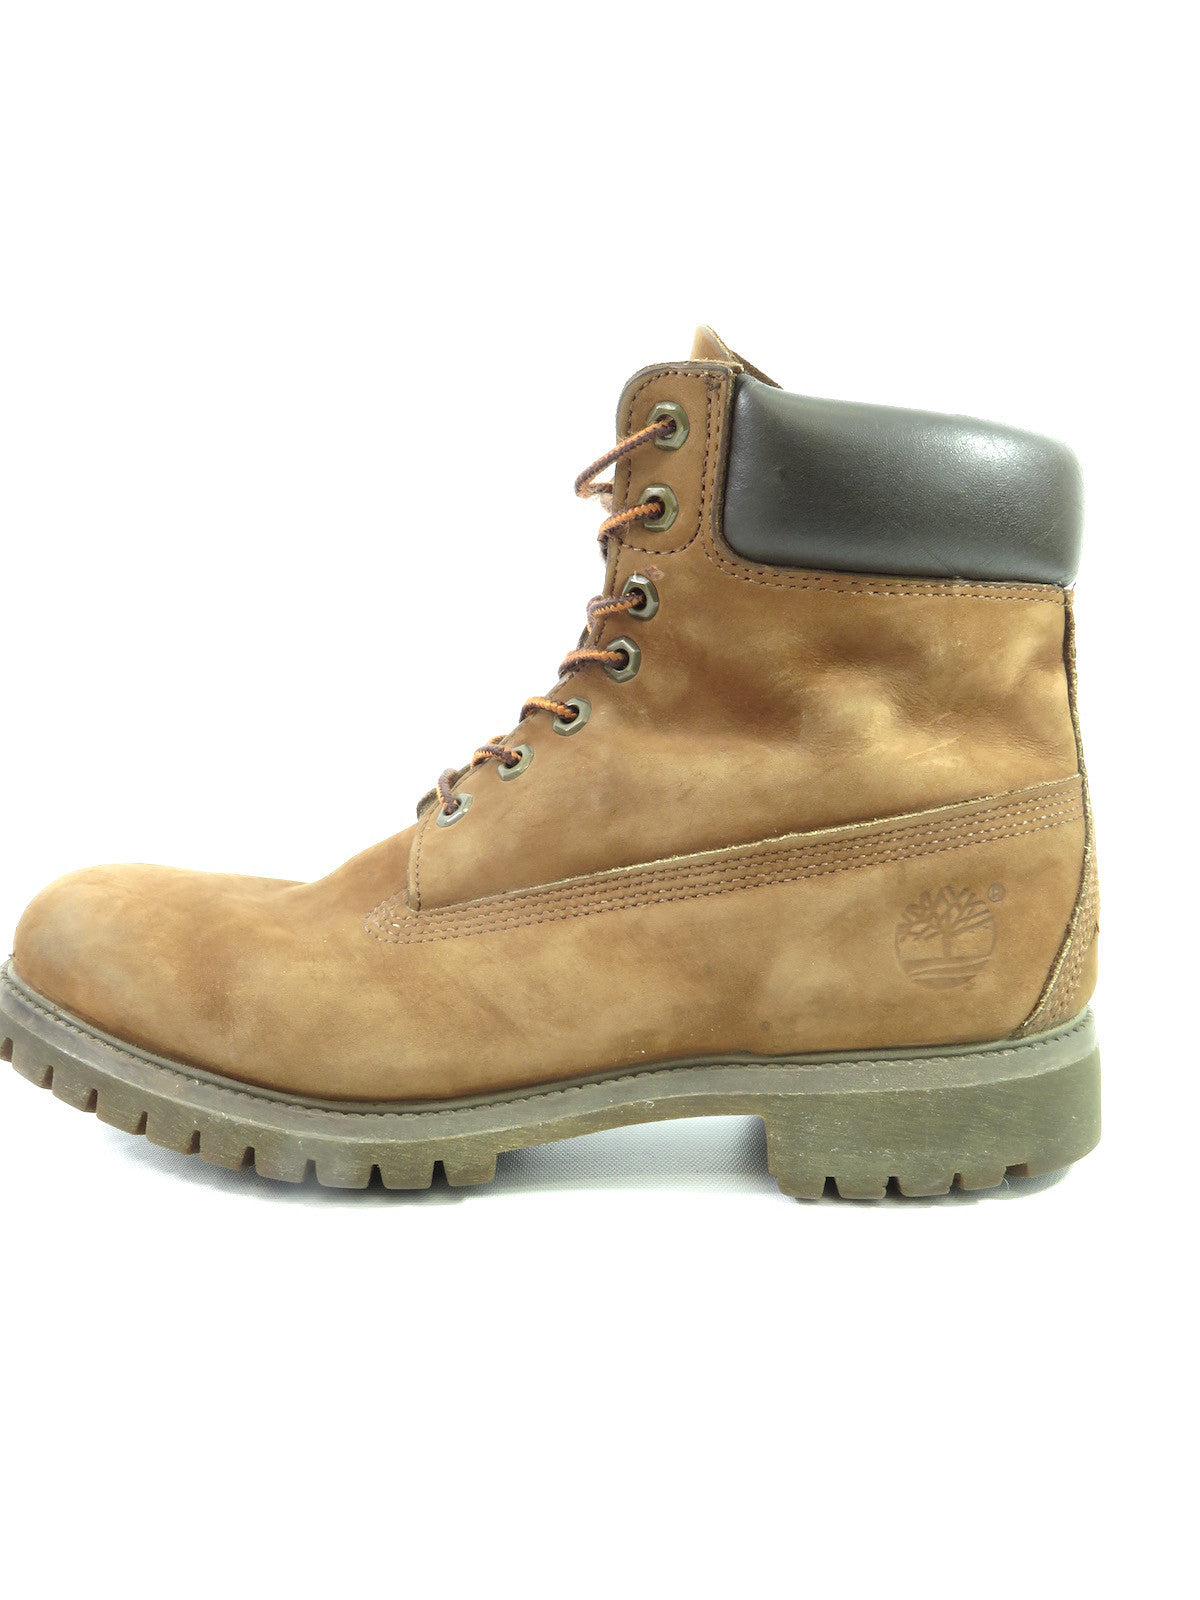 quality design 9c108 4d7da TIMBERLAND Men Brown Waterproof Genuine Leather Suede Ankle ...